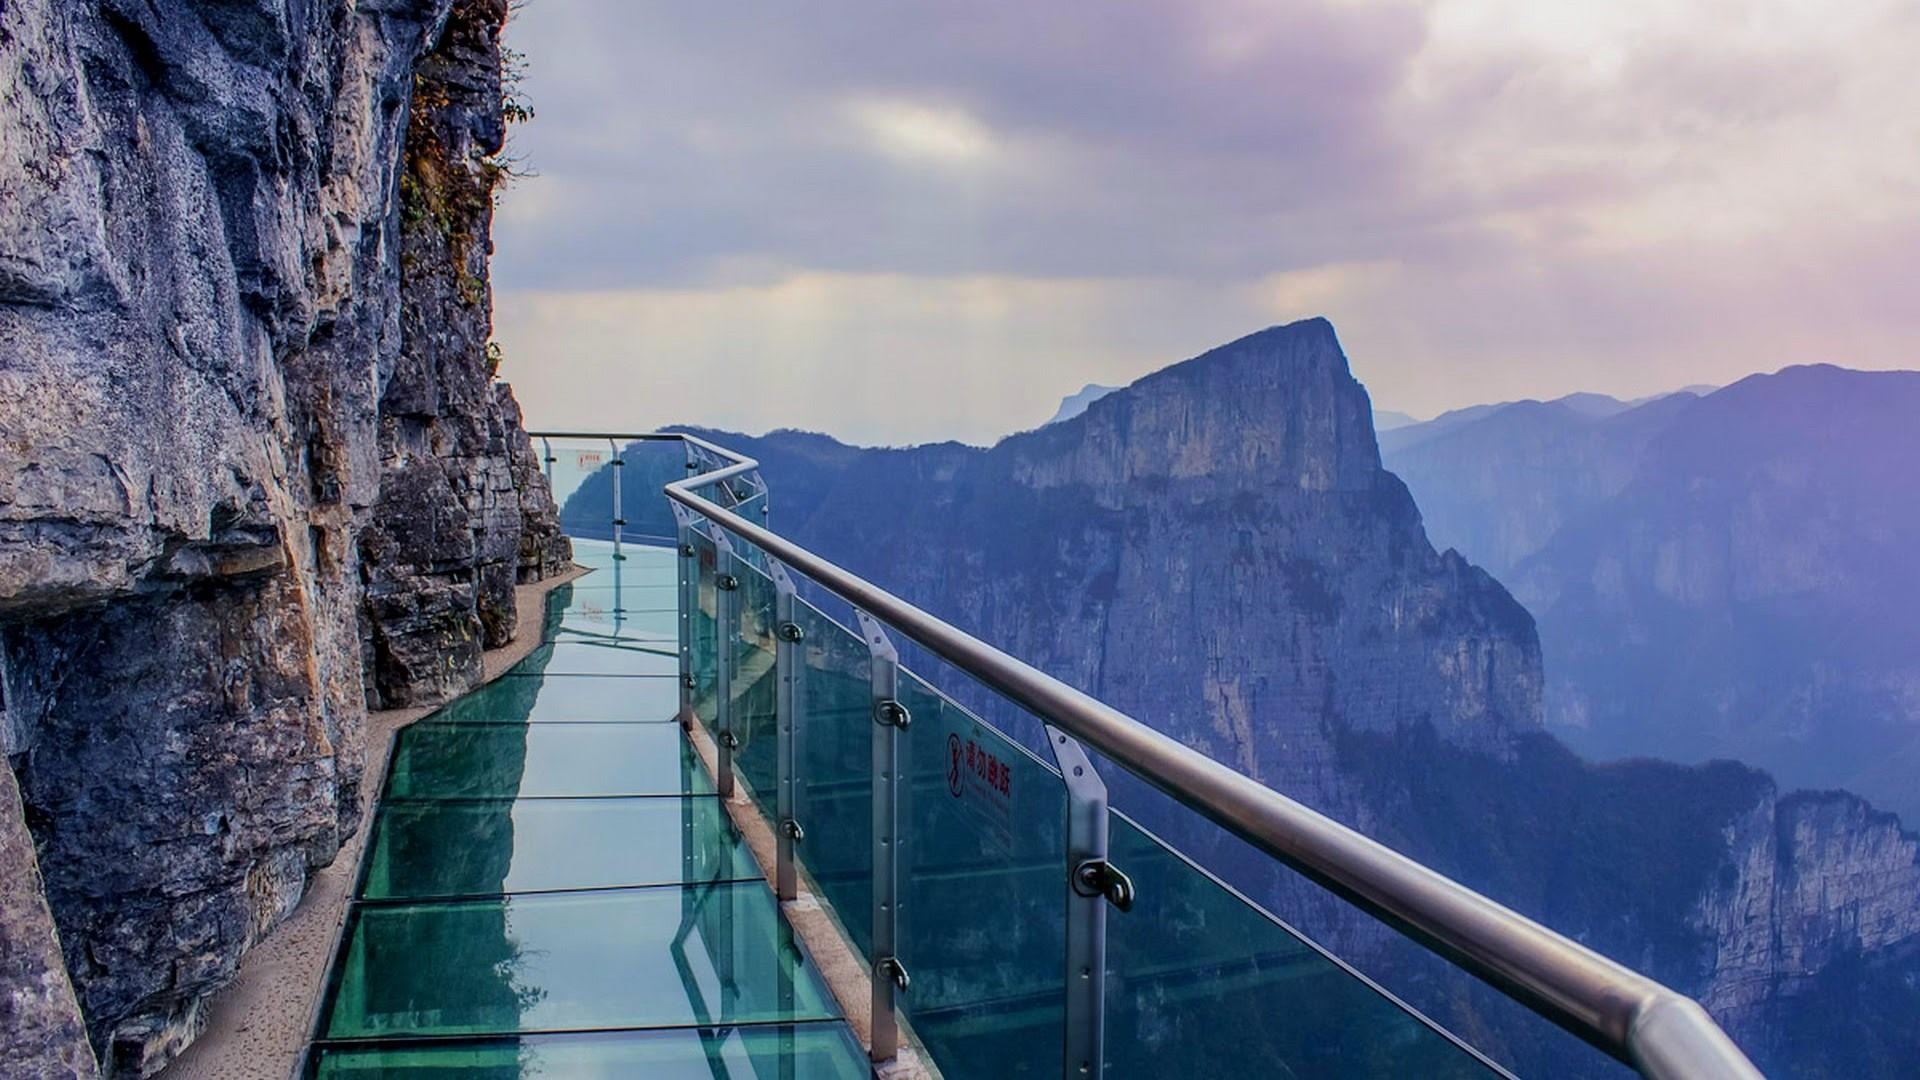 Coiling Dragon Cliff Skywalk Tianmen Mountain National